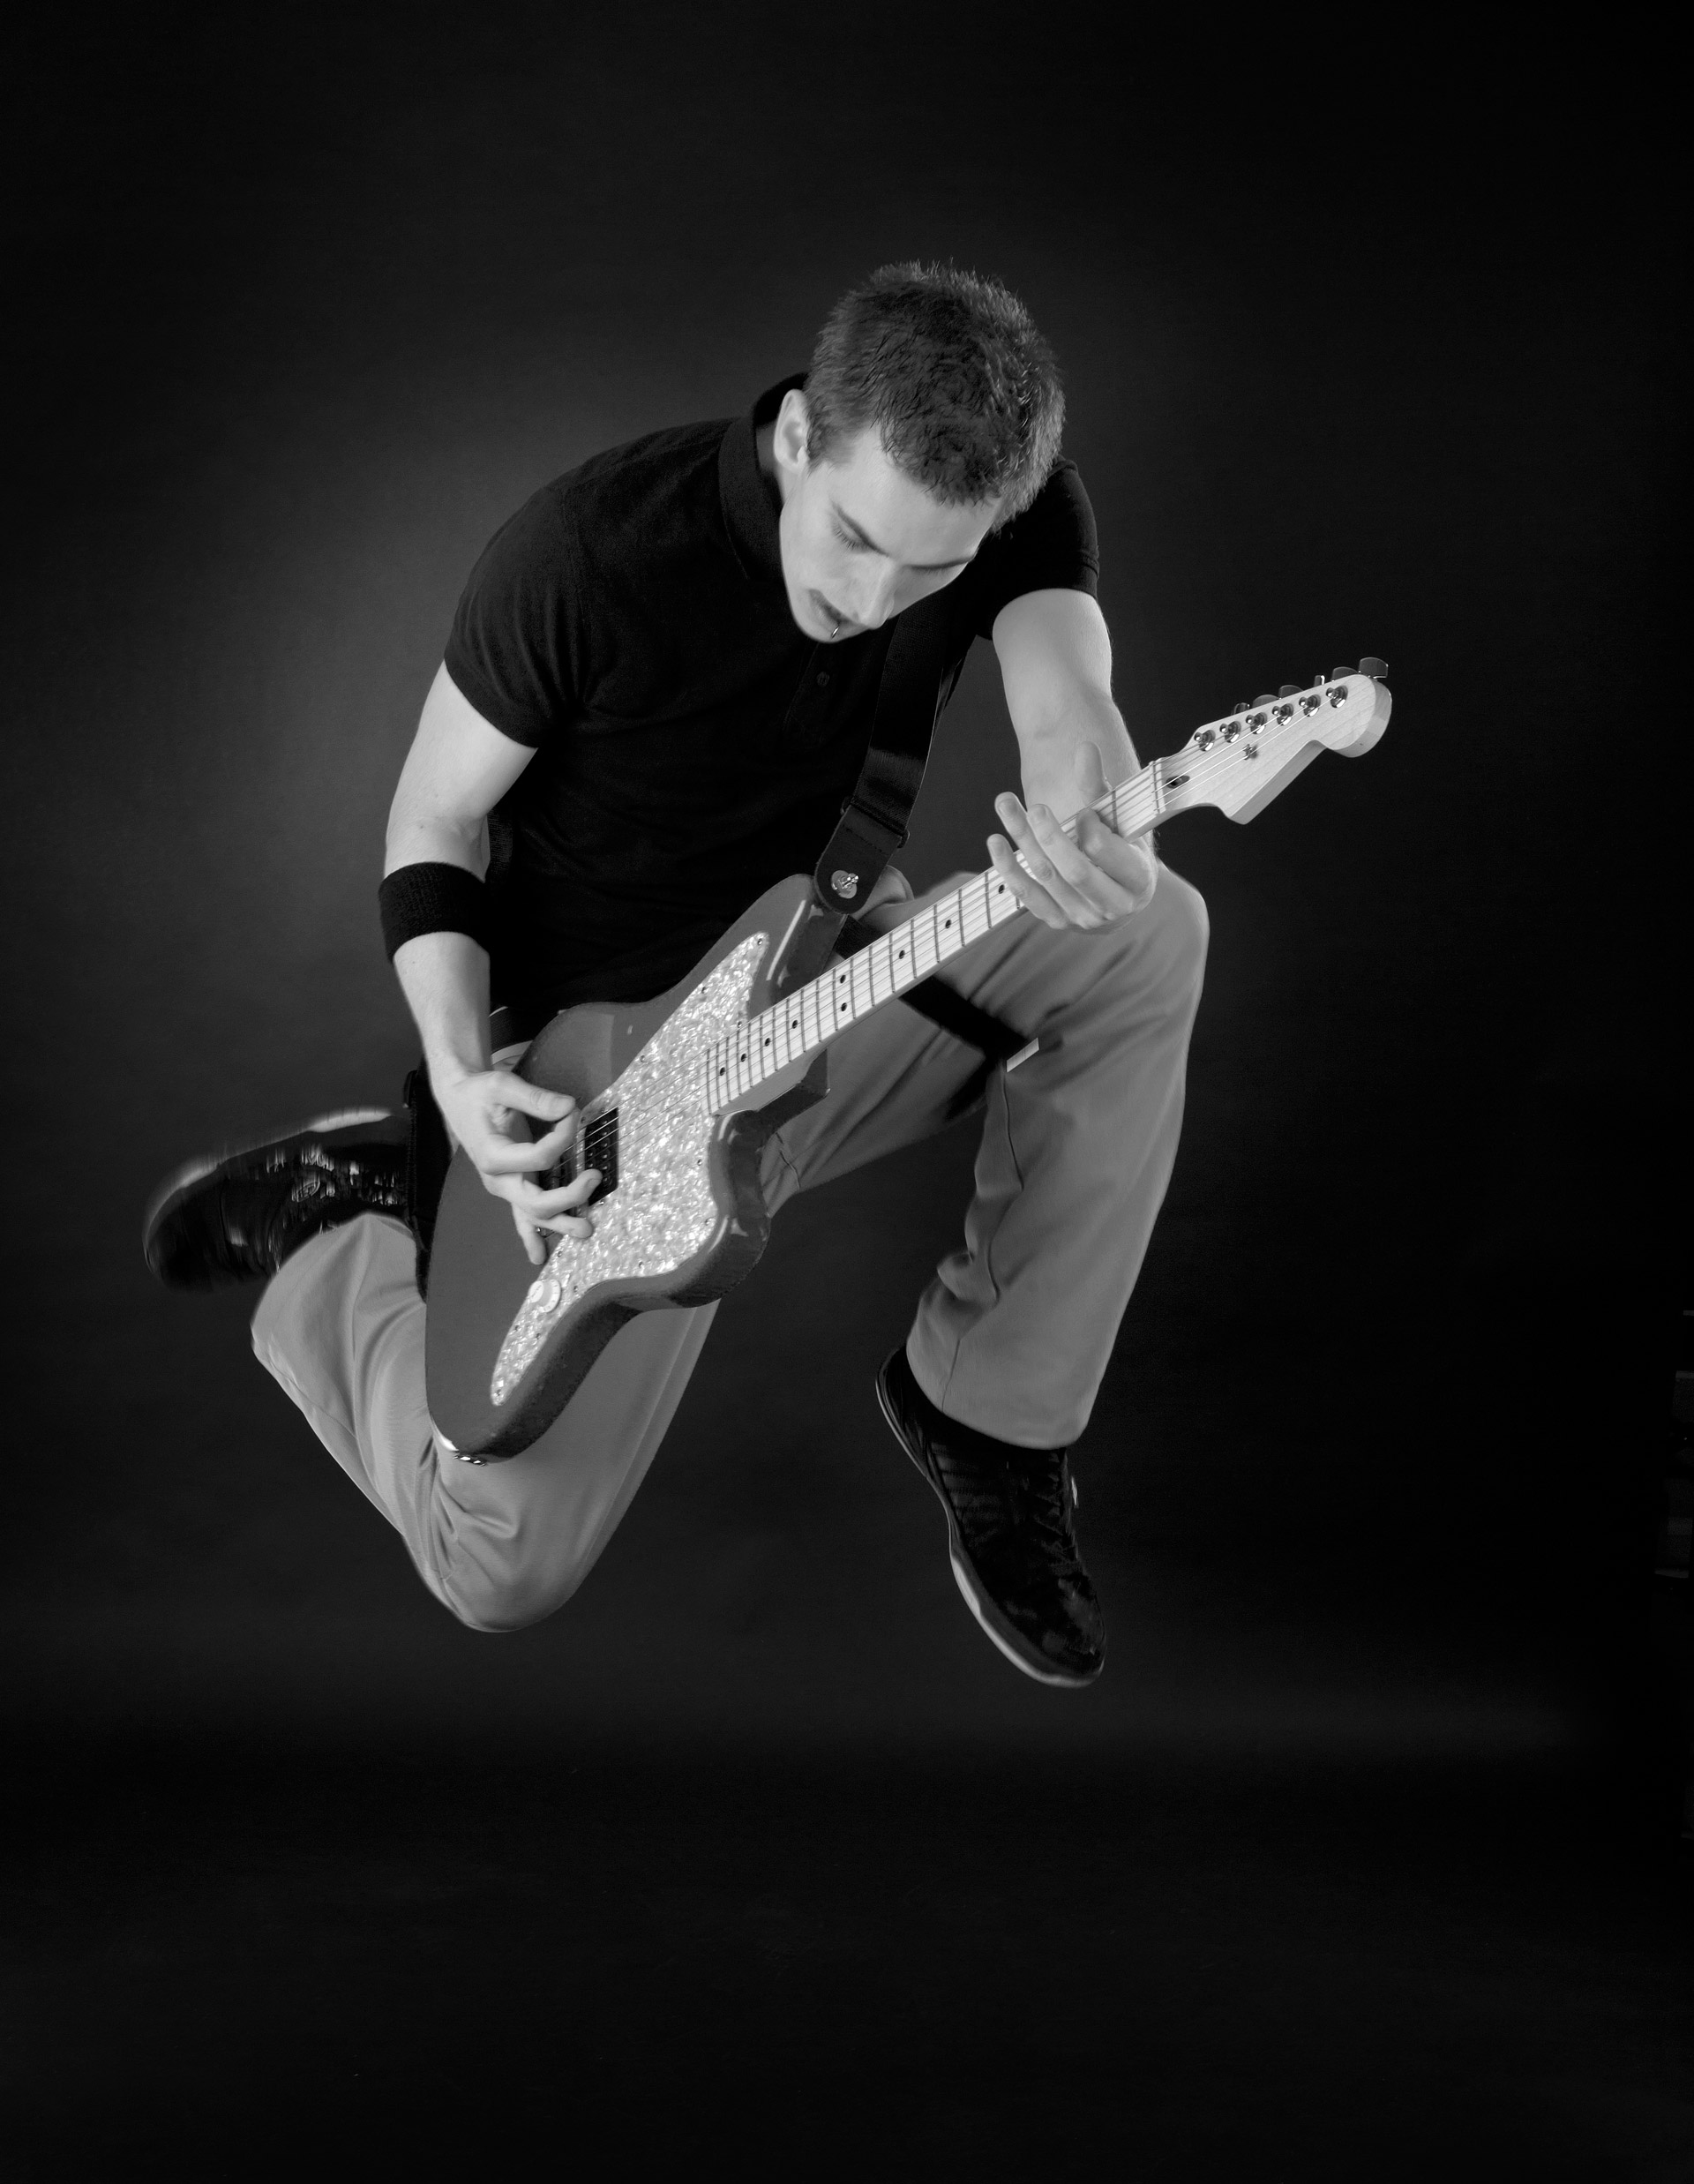 Man playing guitar while jumping for exhibition at Danish School of Education